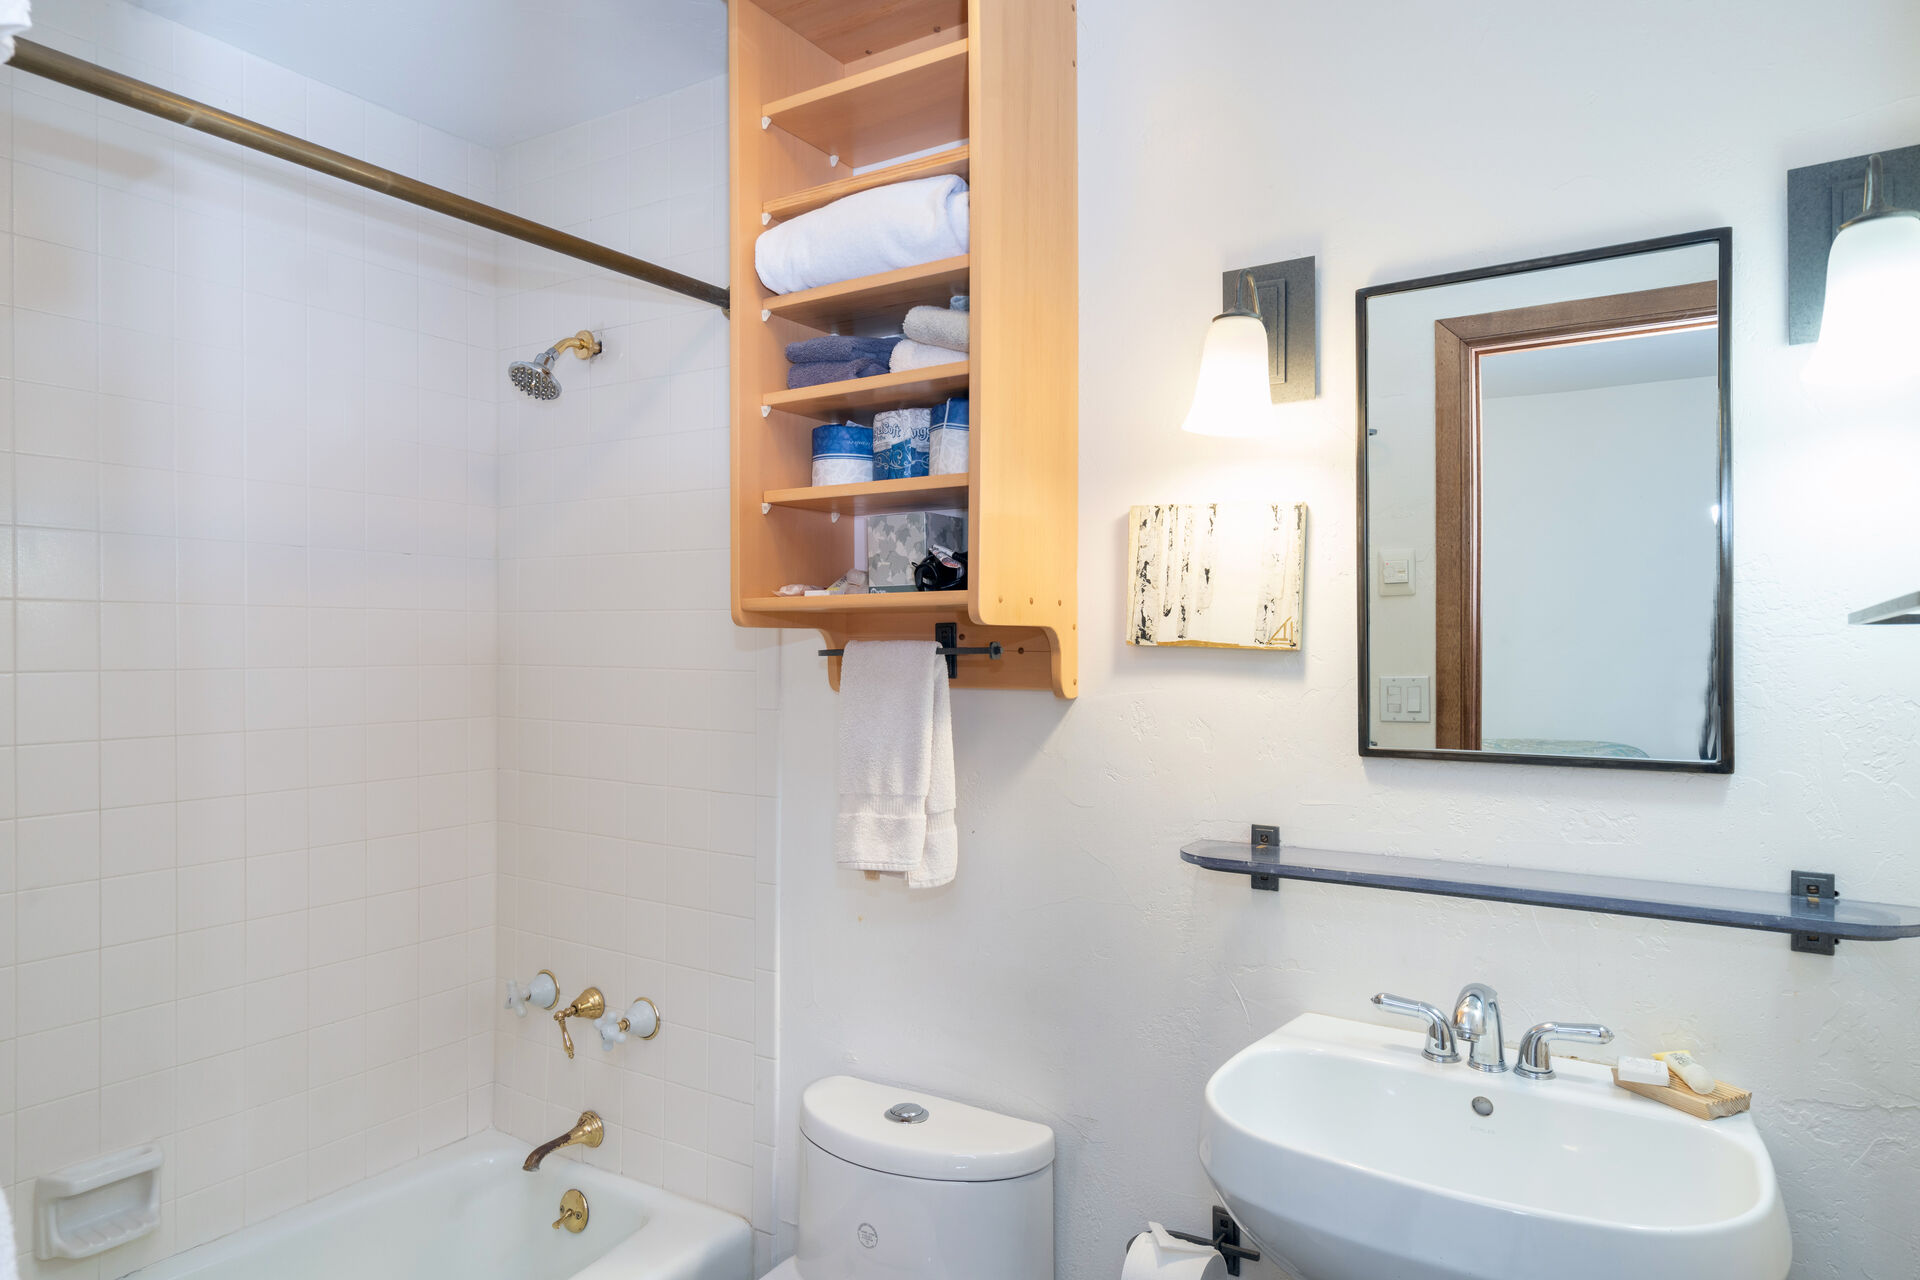 Bathroom with Pedestal Sink and Shower-Tub Combo